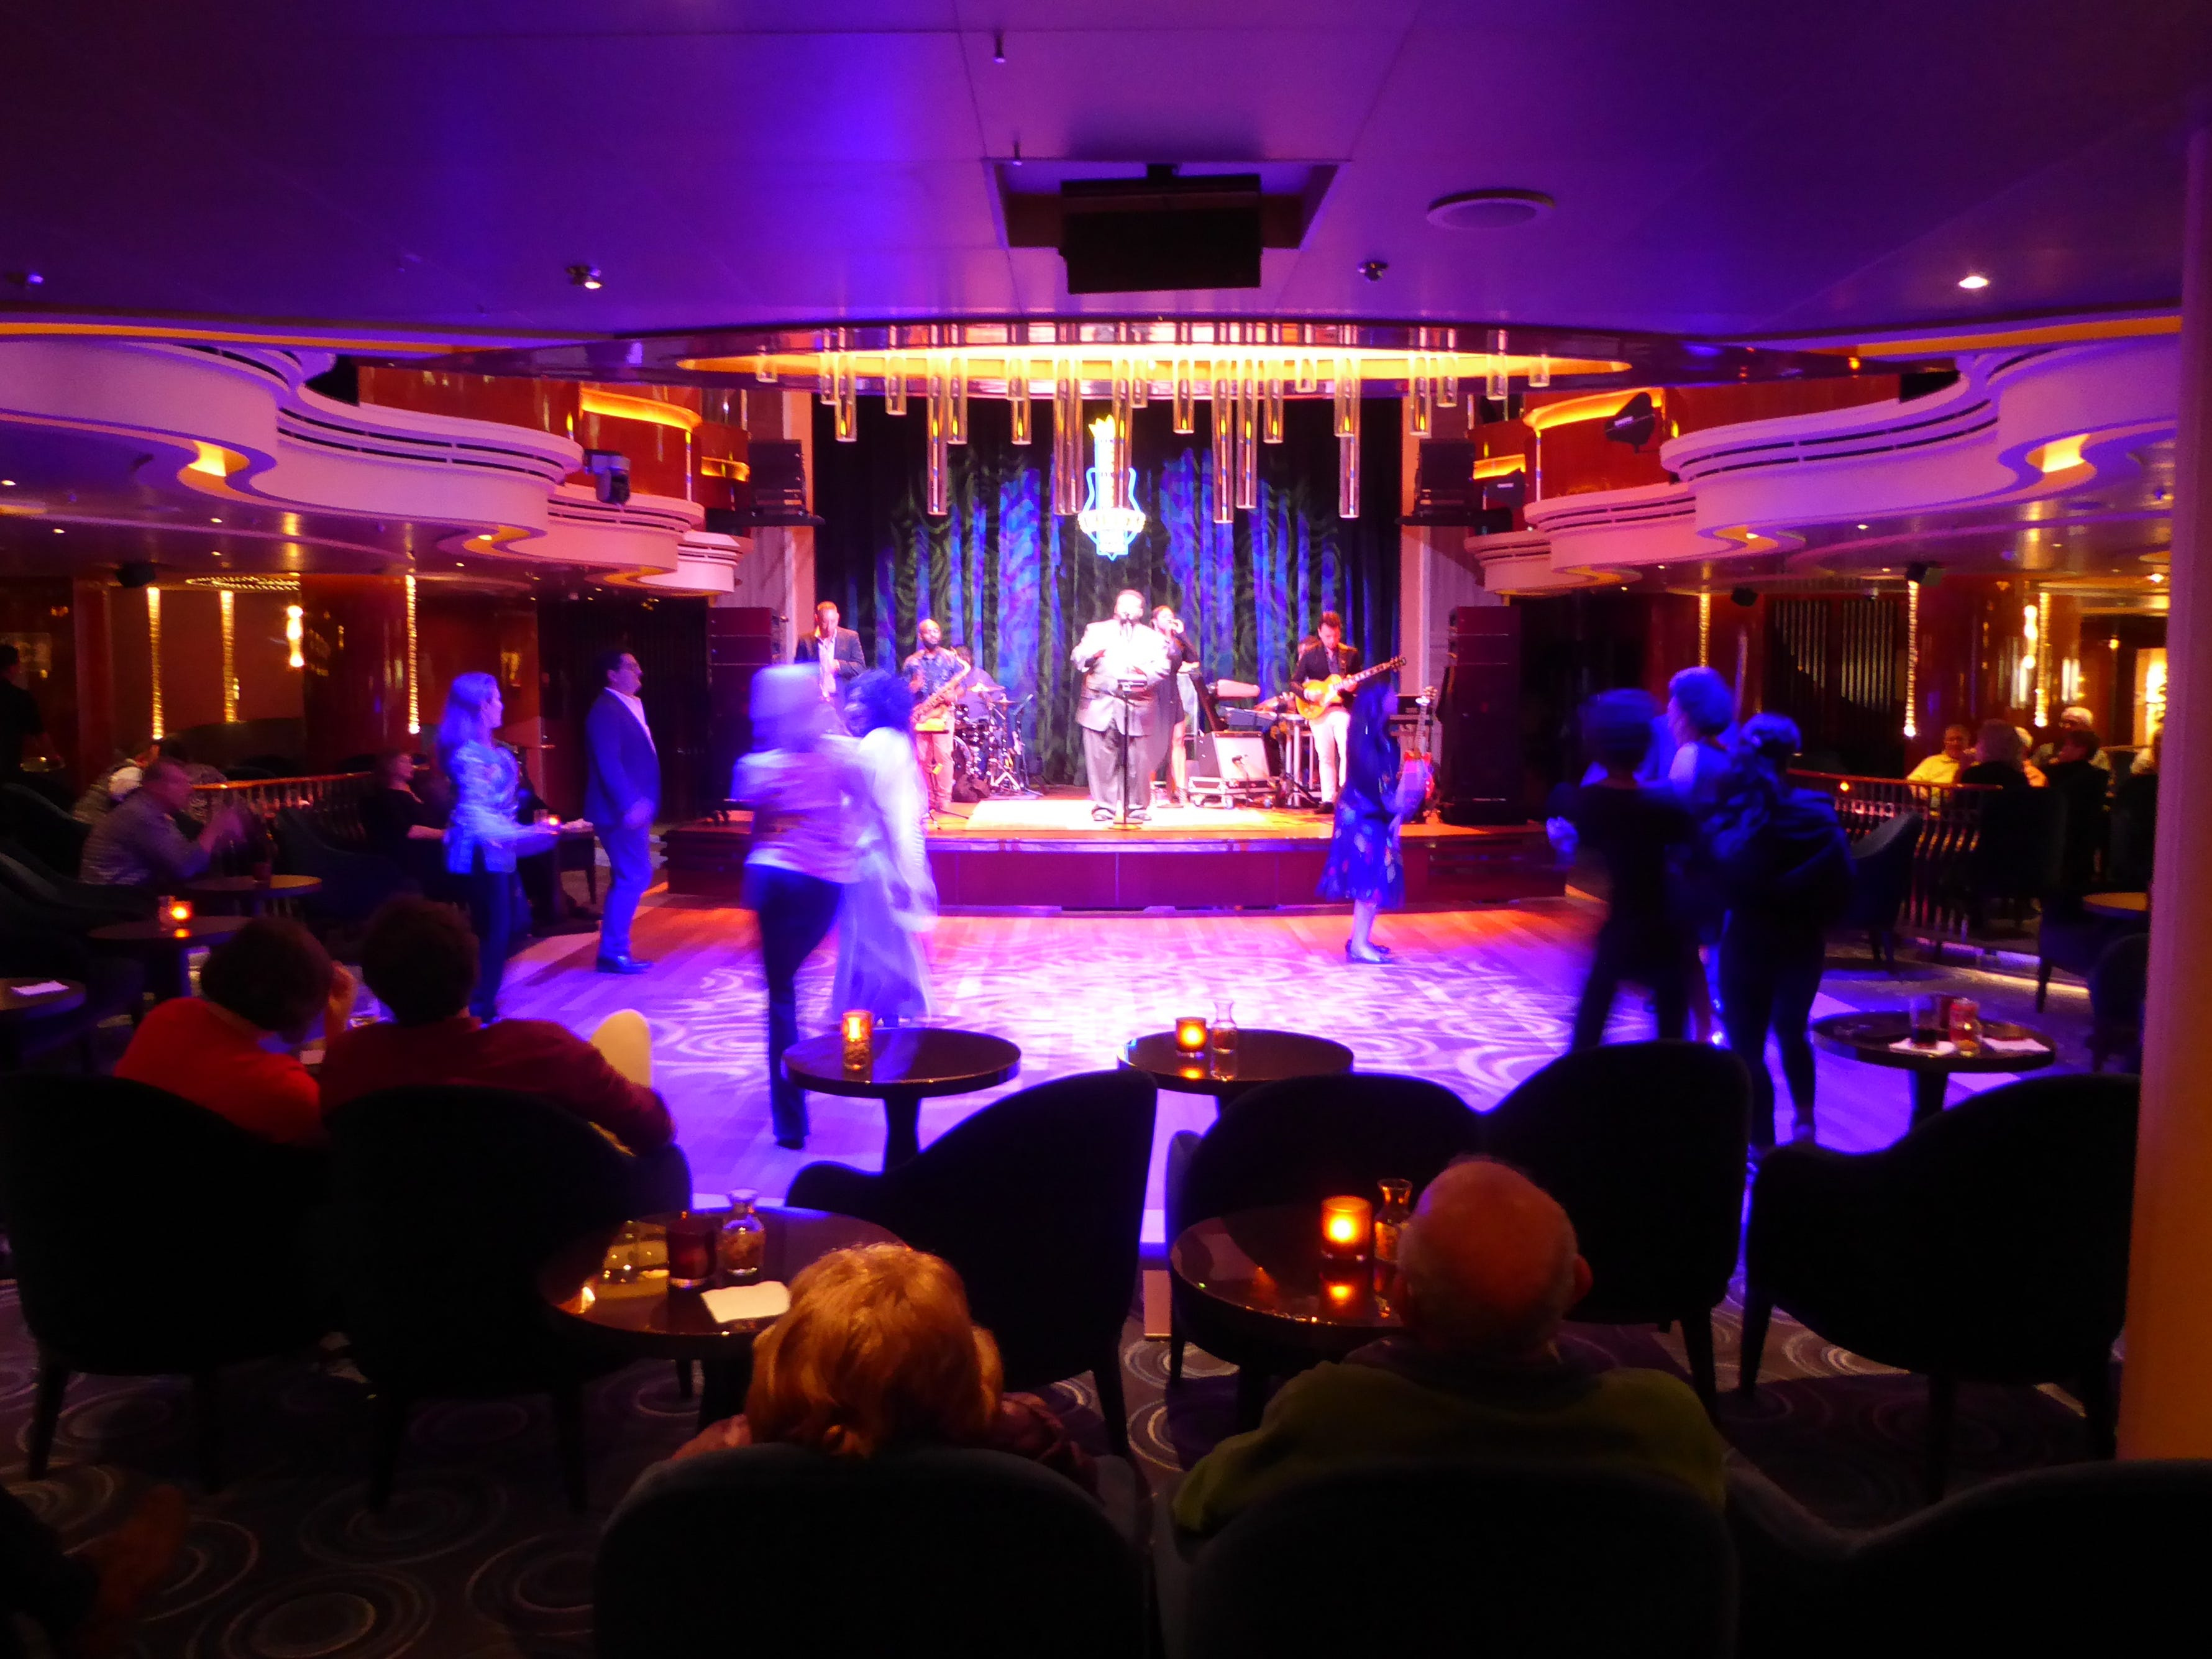 Later in the evening, the pace picks up as Lincoln Center Stage/BB King's Blues Club hosts live blues performances.